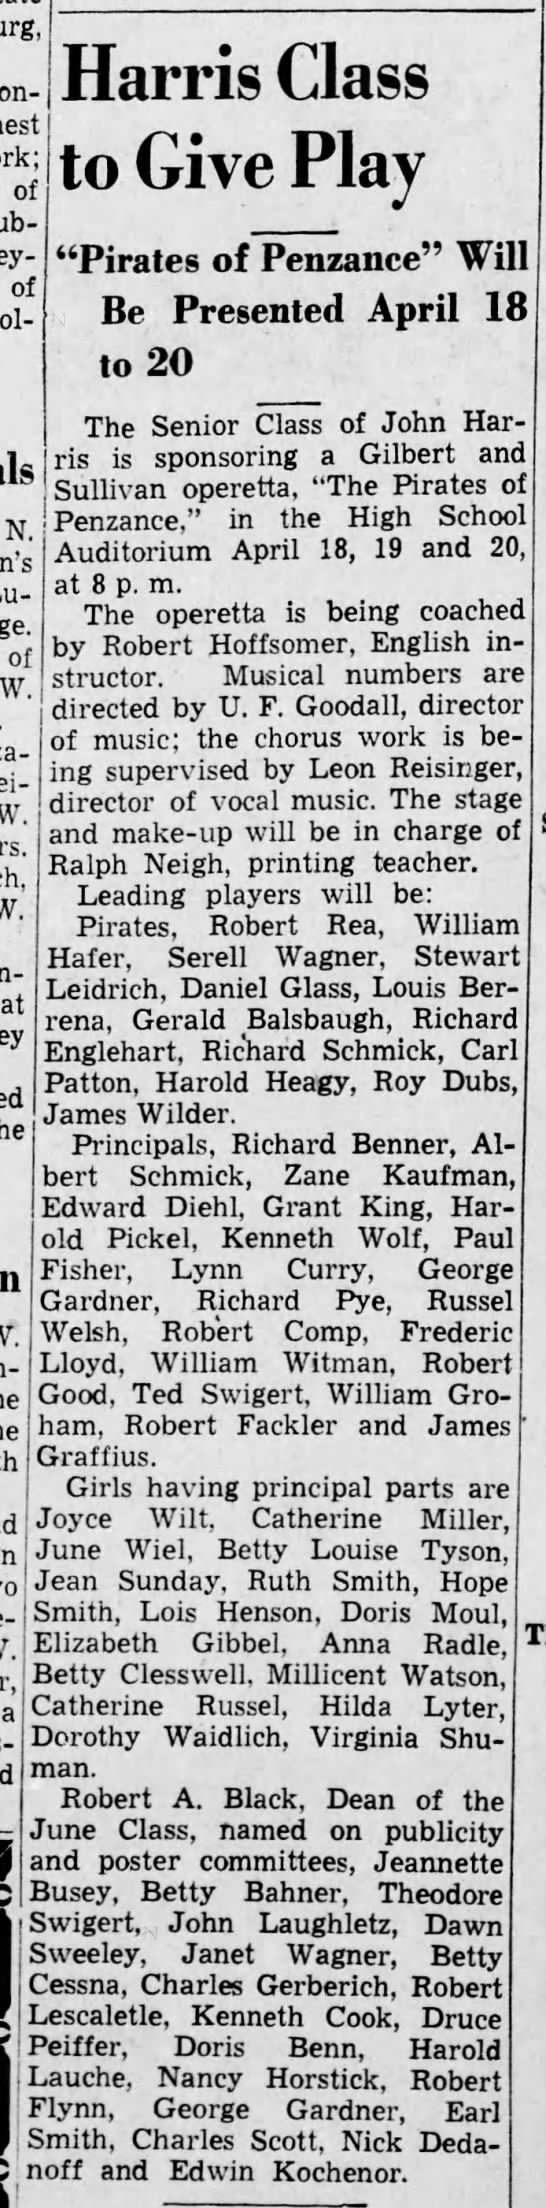 1940 Lynn Curry Jr in Pirates of Penzance -